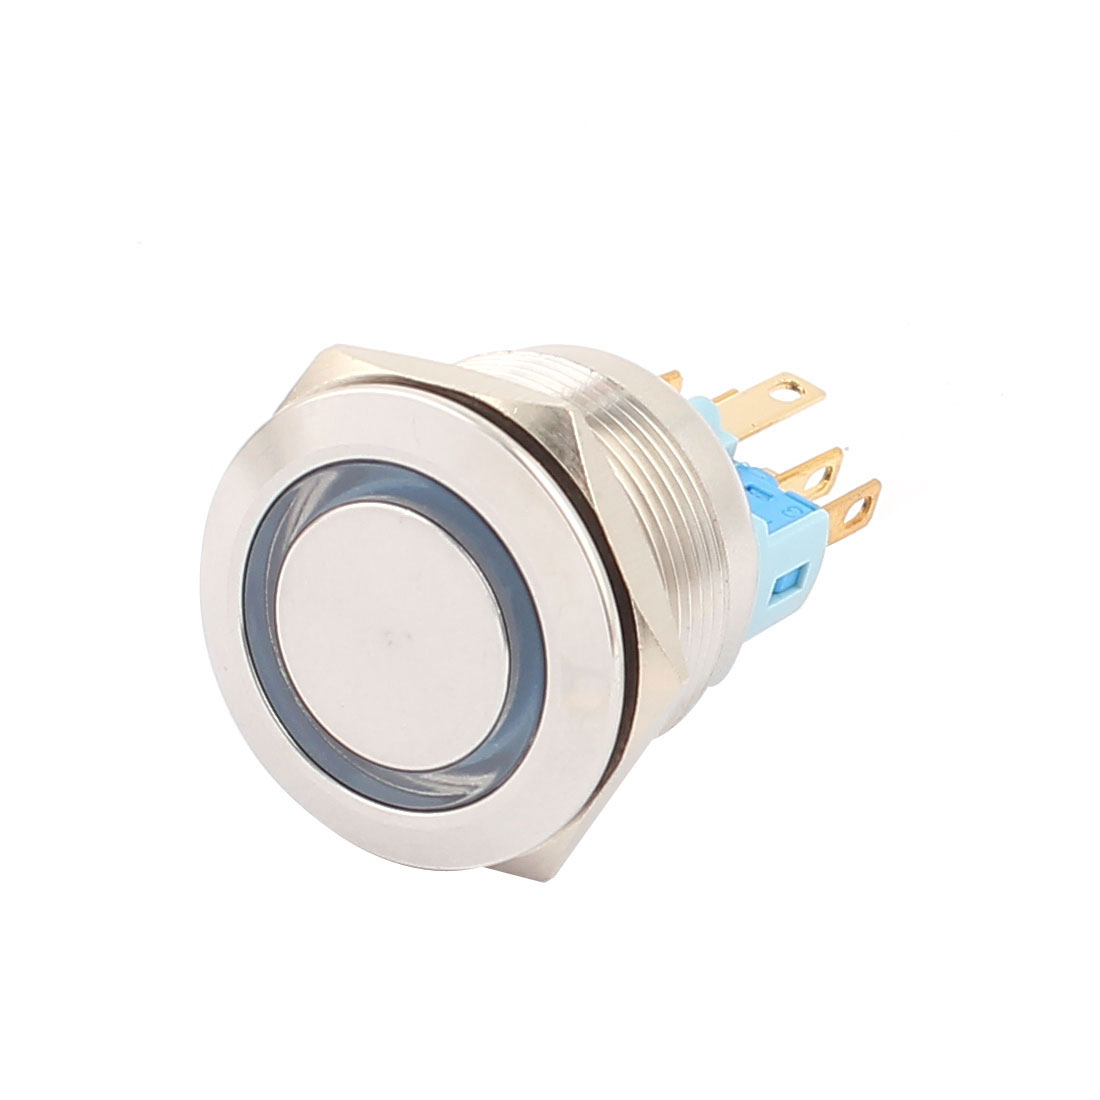 24V 25mm Thread Dia White LED Angle Eyes Momentary Metal Pushbutton Switch - image 1 of 4